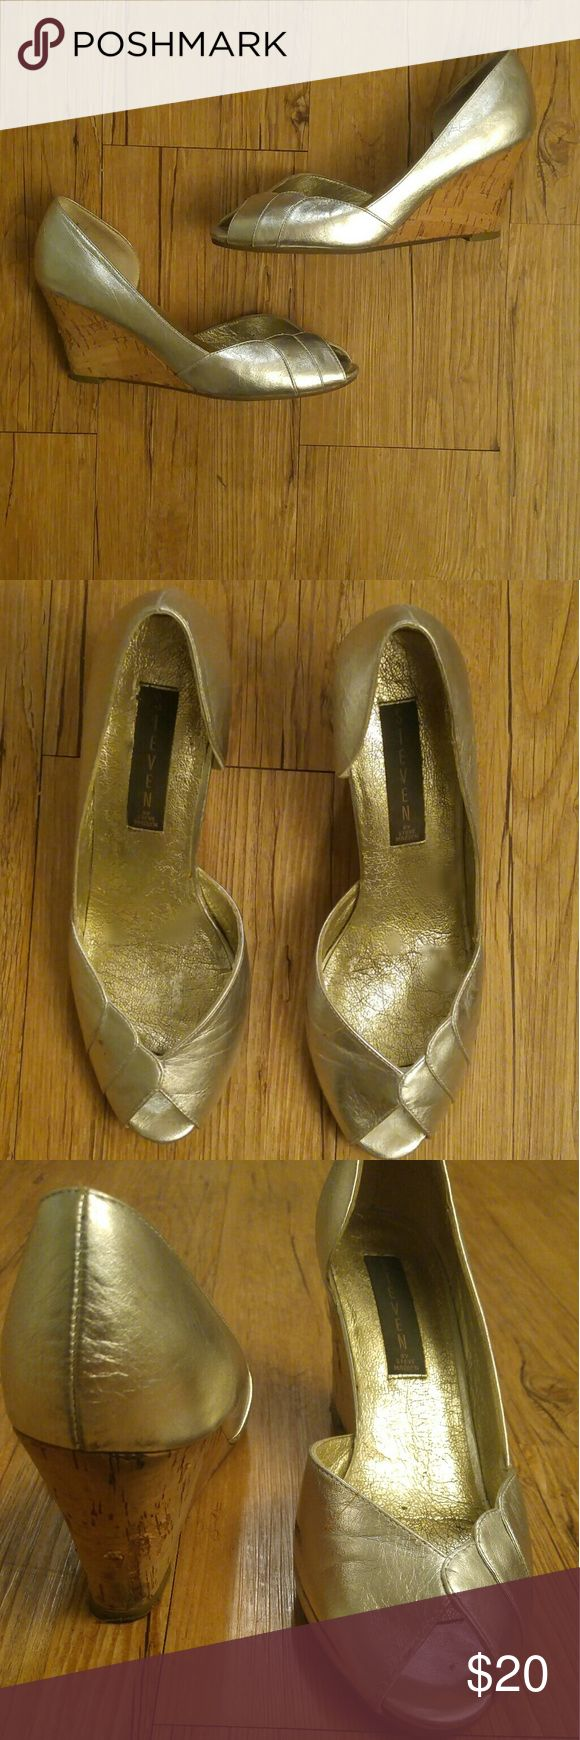 Steve Madden Silver Metallic wedge Lightly worn silver metallic wedge. Leather is in excellent shape. Super comfy and great for pool parties or day wear Steve Madden Shoes Wedges